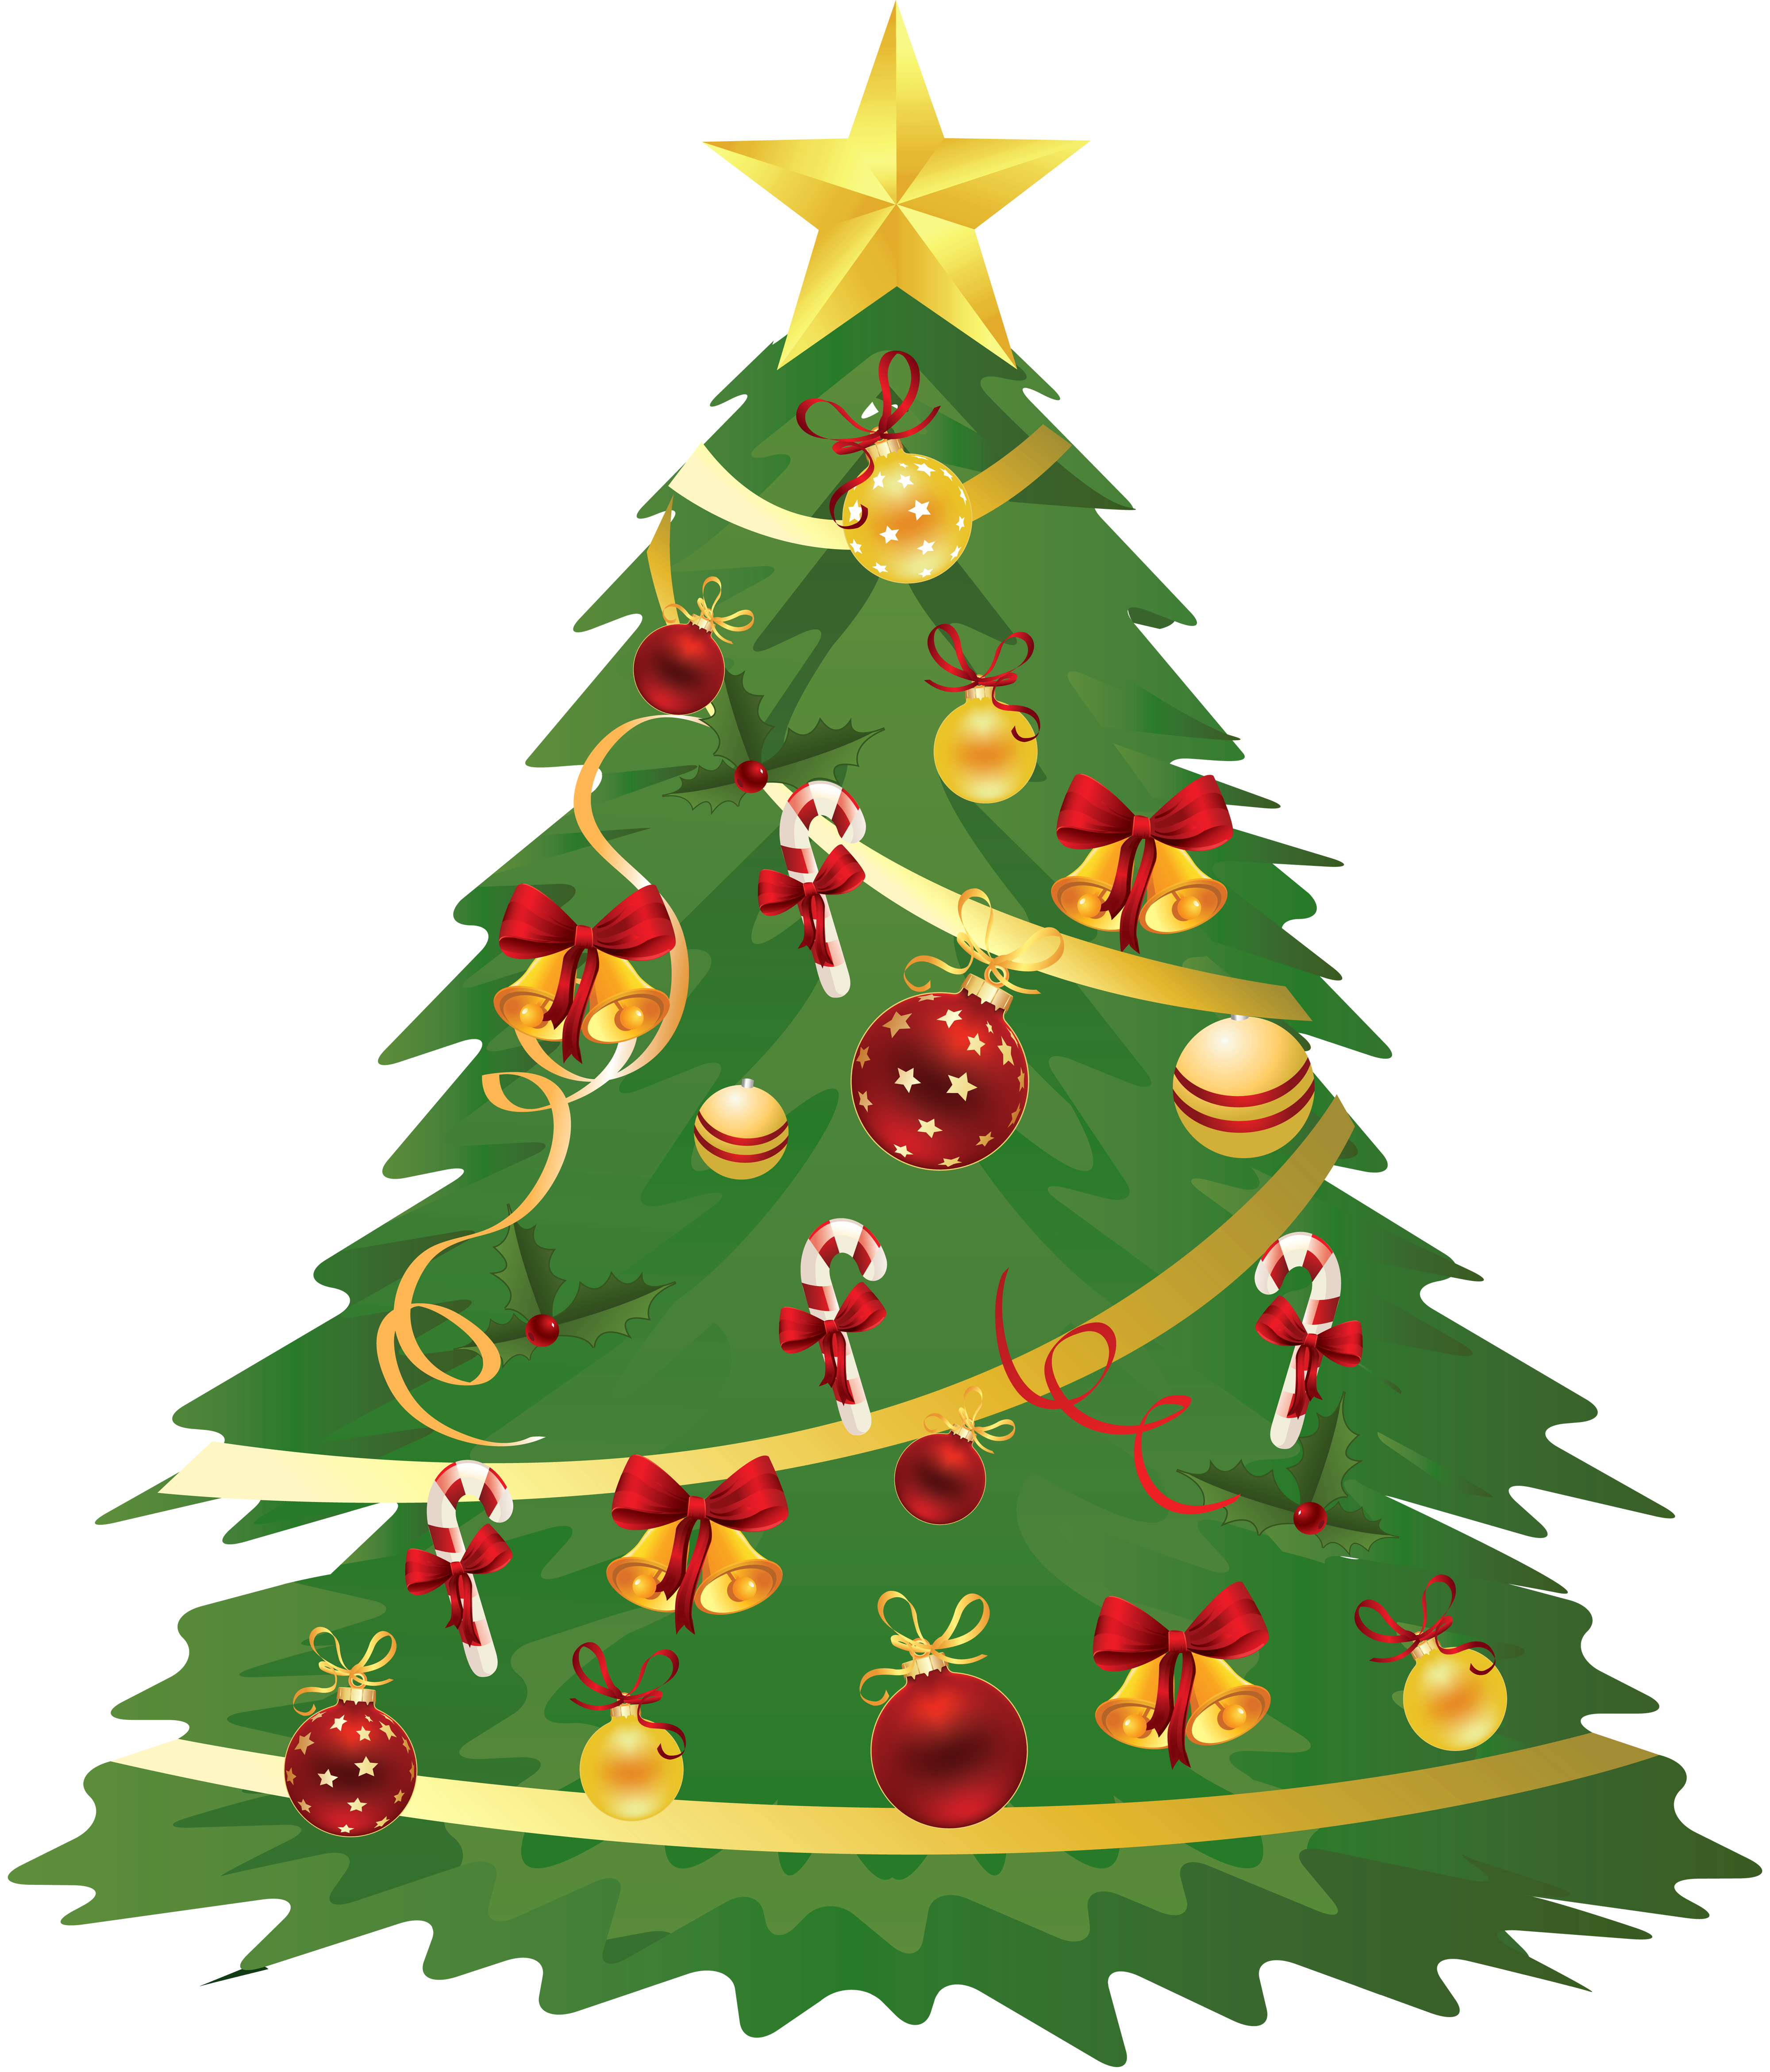 Christmas tree transparent background png. Large with ornaments and